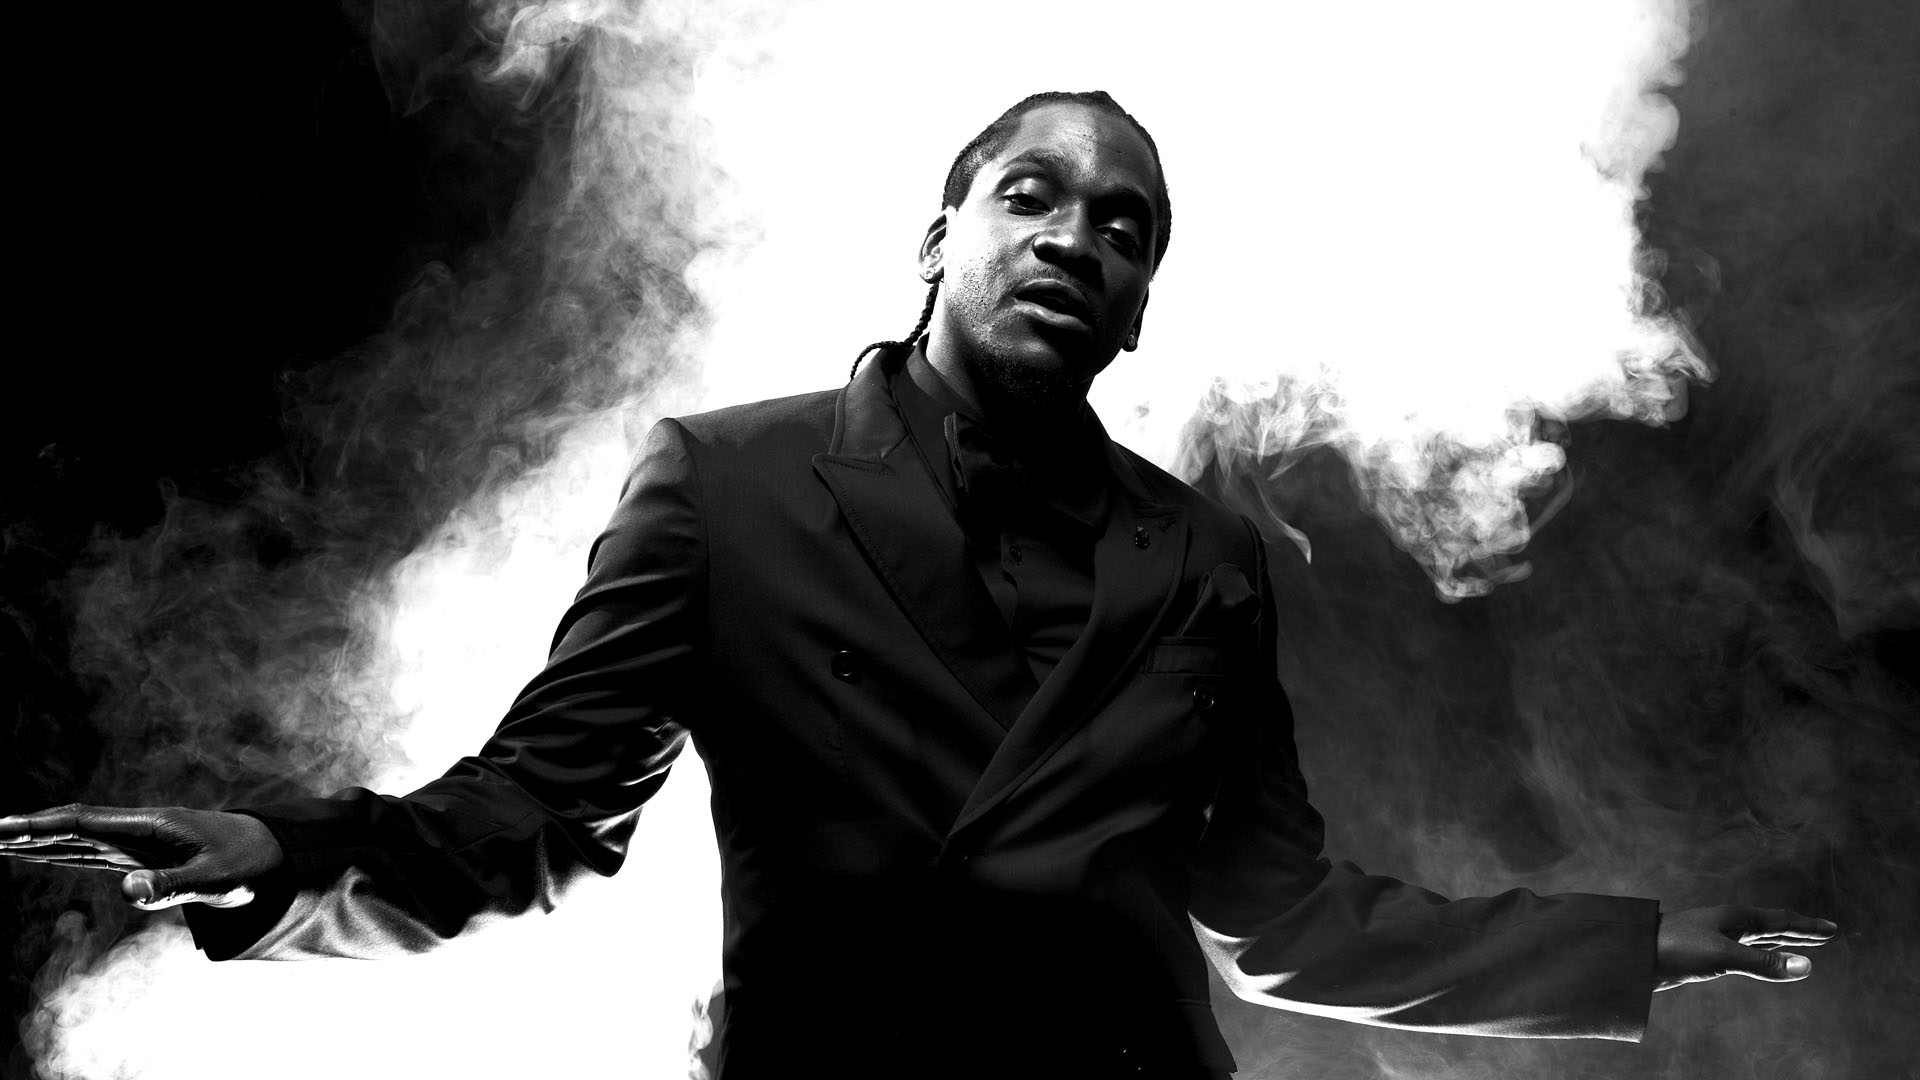 Pusha T feat. Notorious B.I.G. – Untouchable (Video)